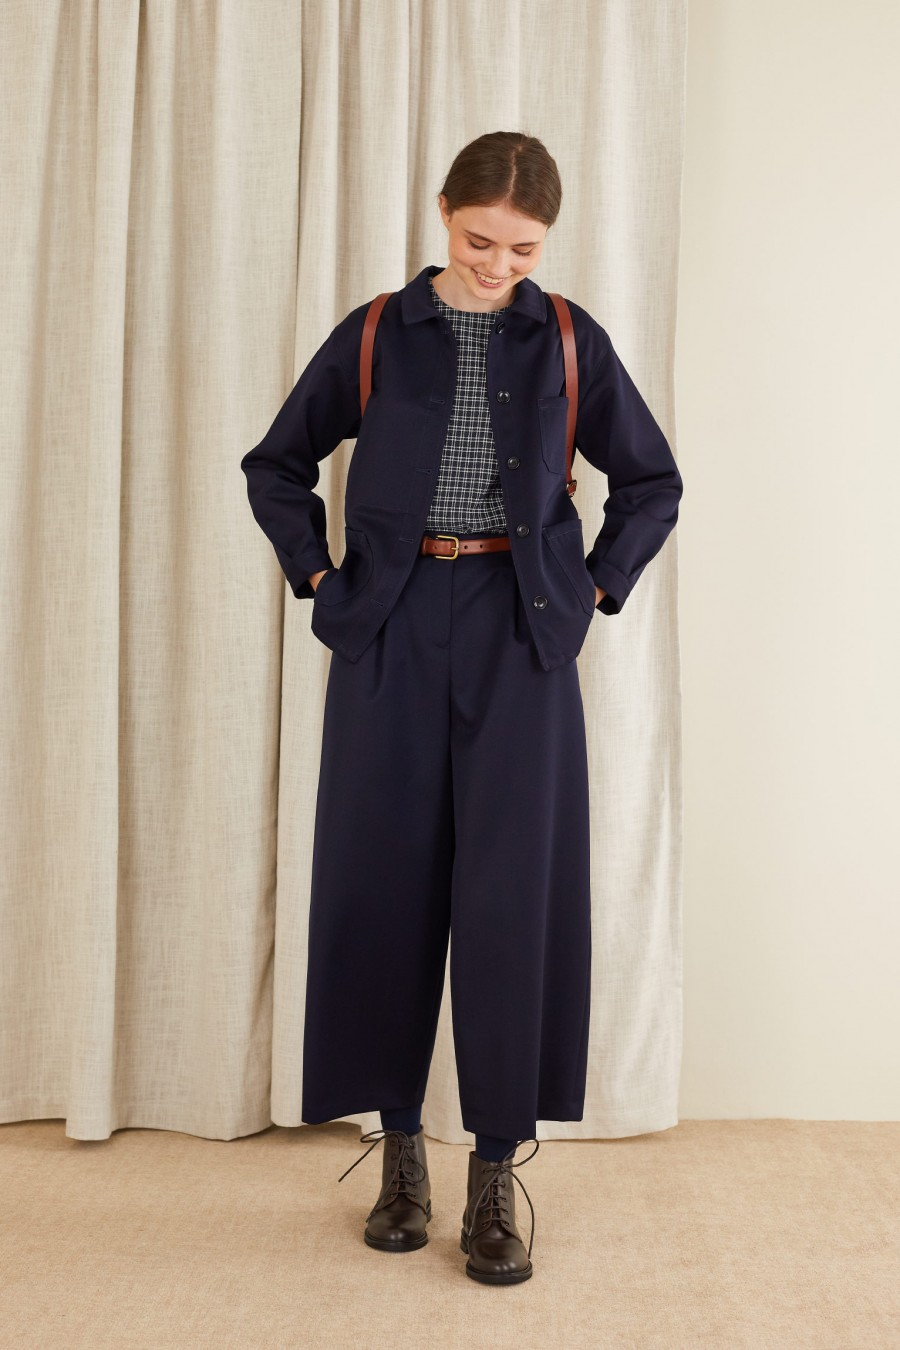 youthful look with egg-shaped trousers